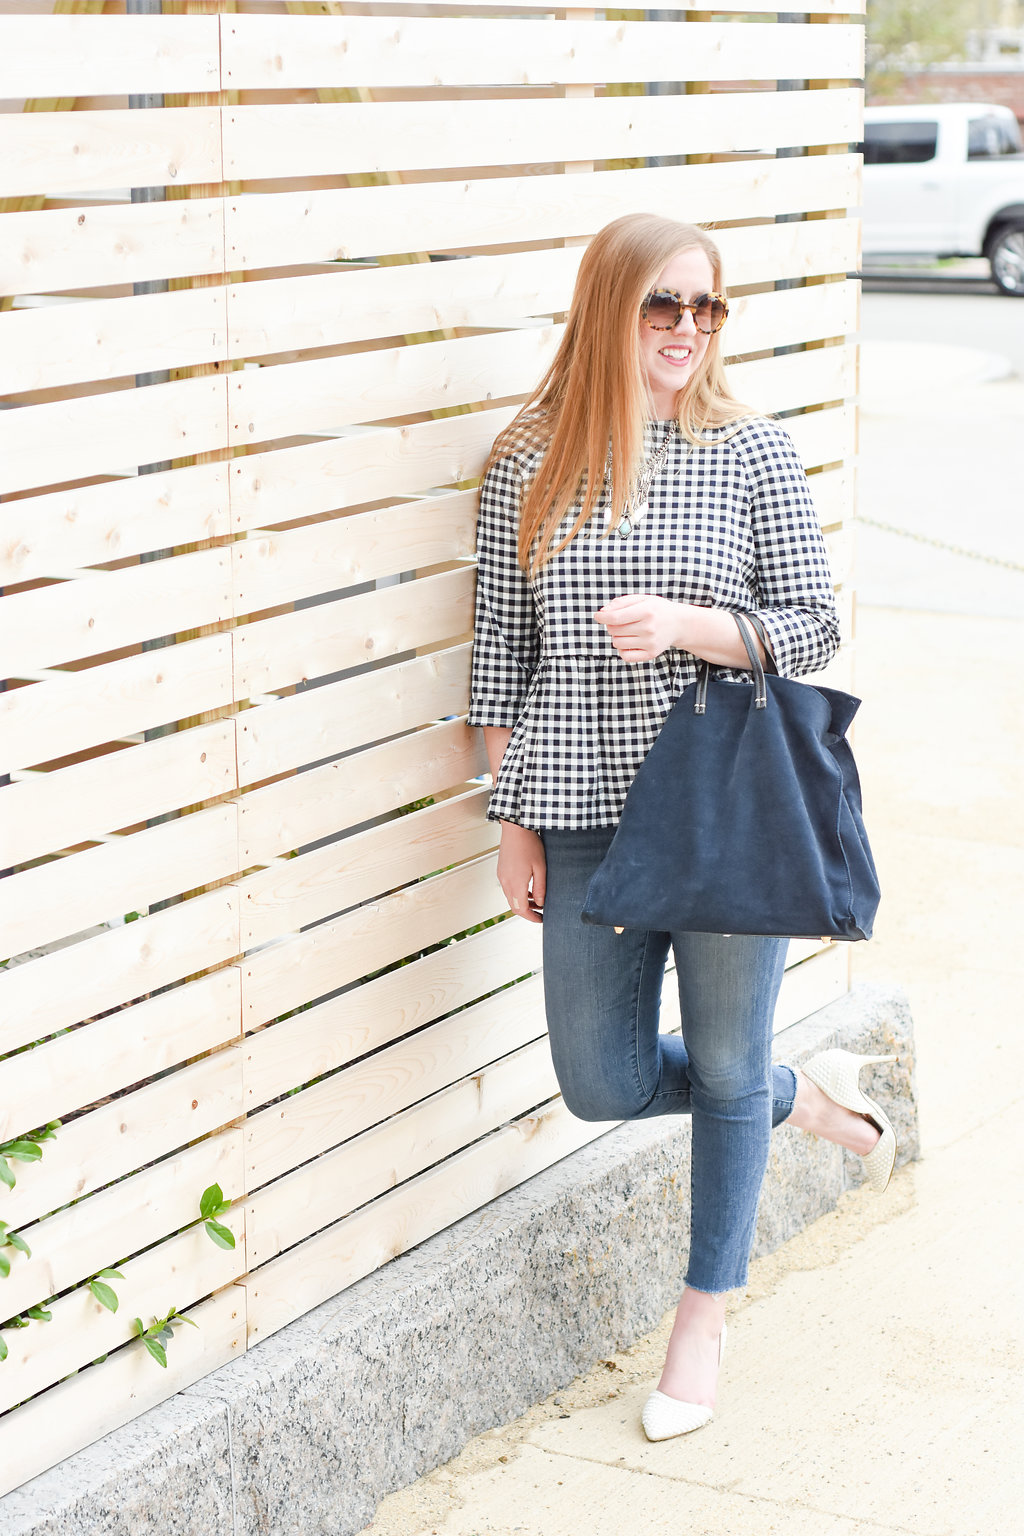 target victoria beckham boston; boston target style blogger; gingham spring style; boston spring style; boston bloggers spring; new england fashion blogger